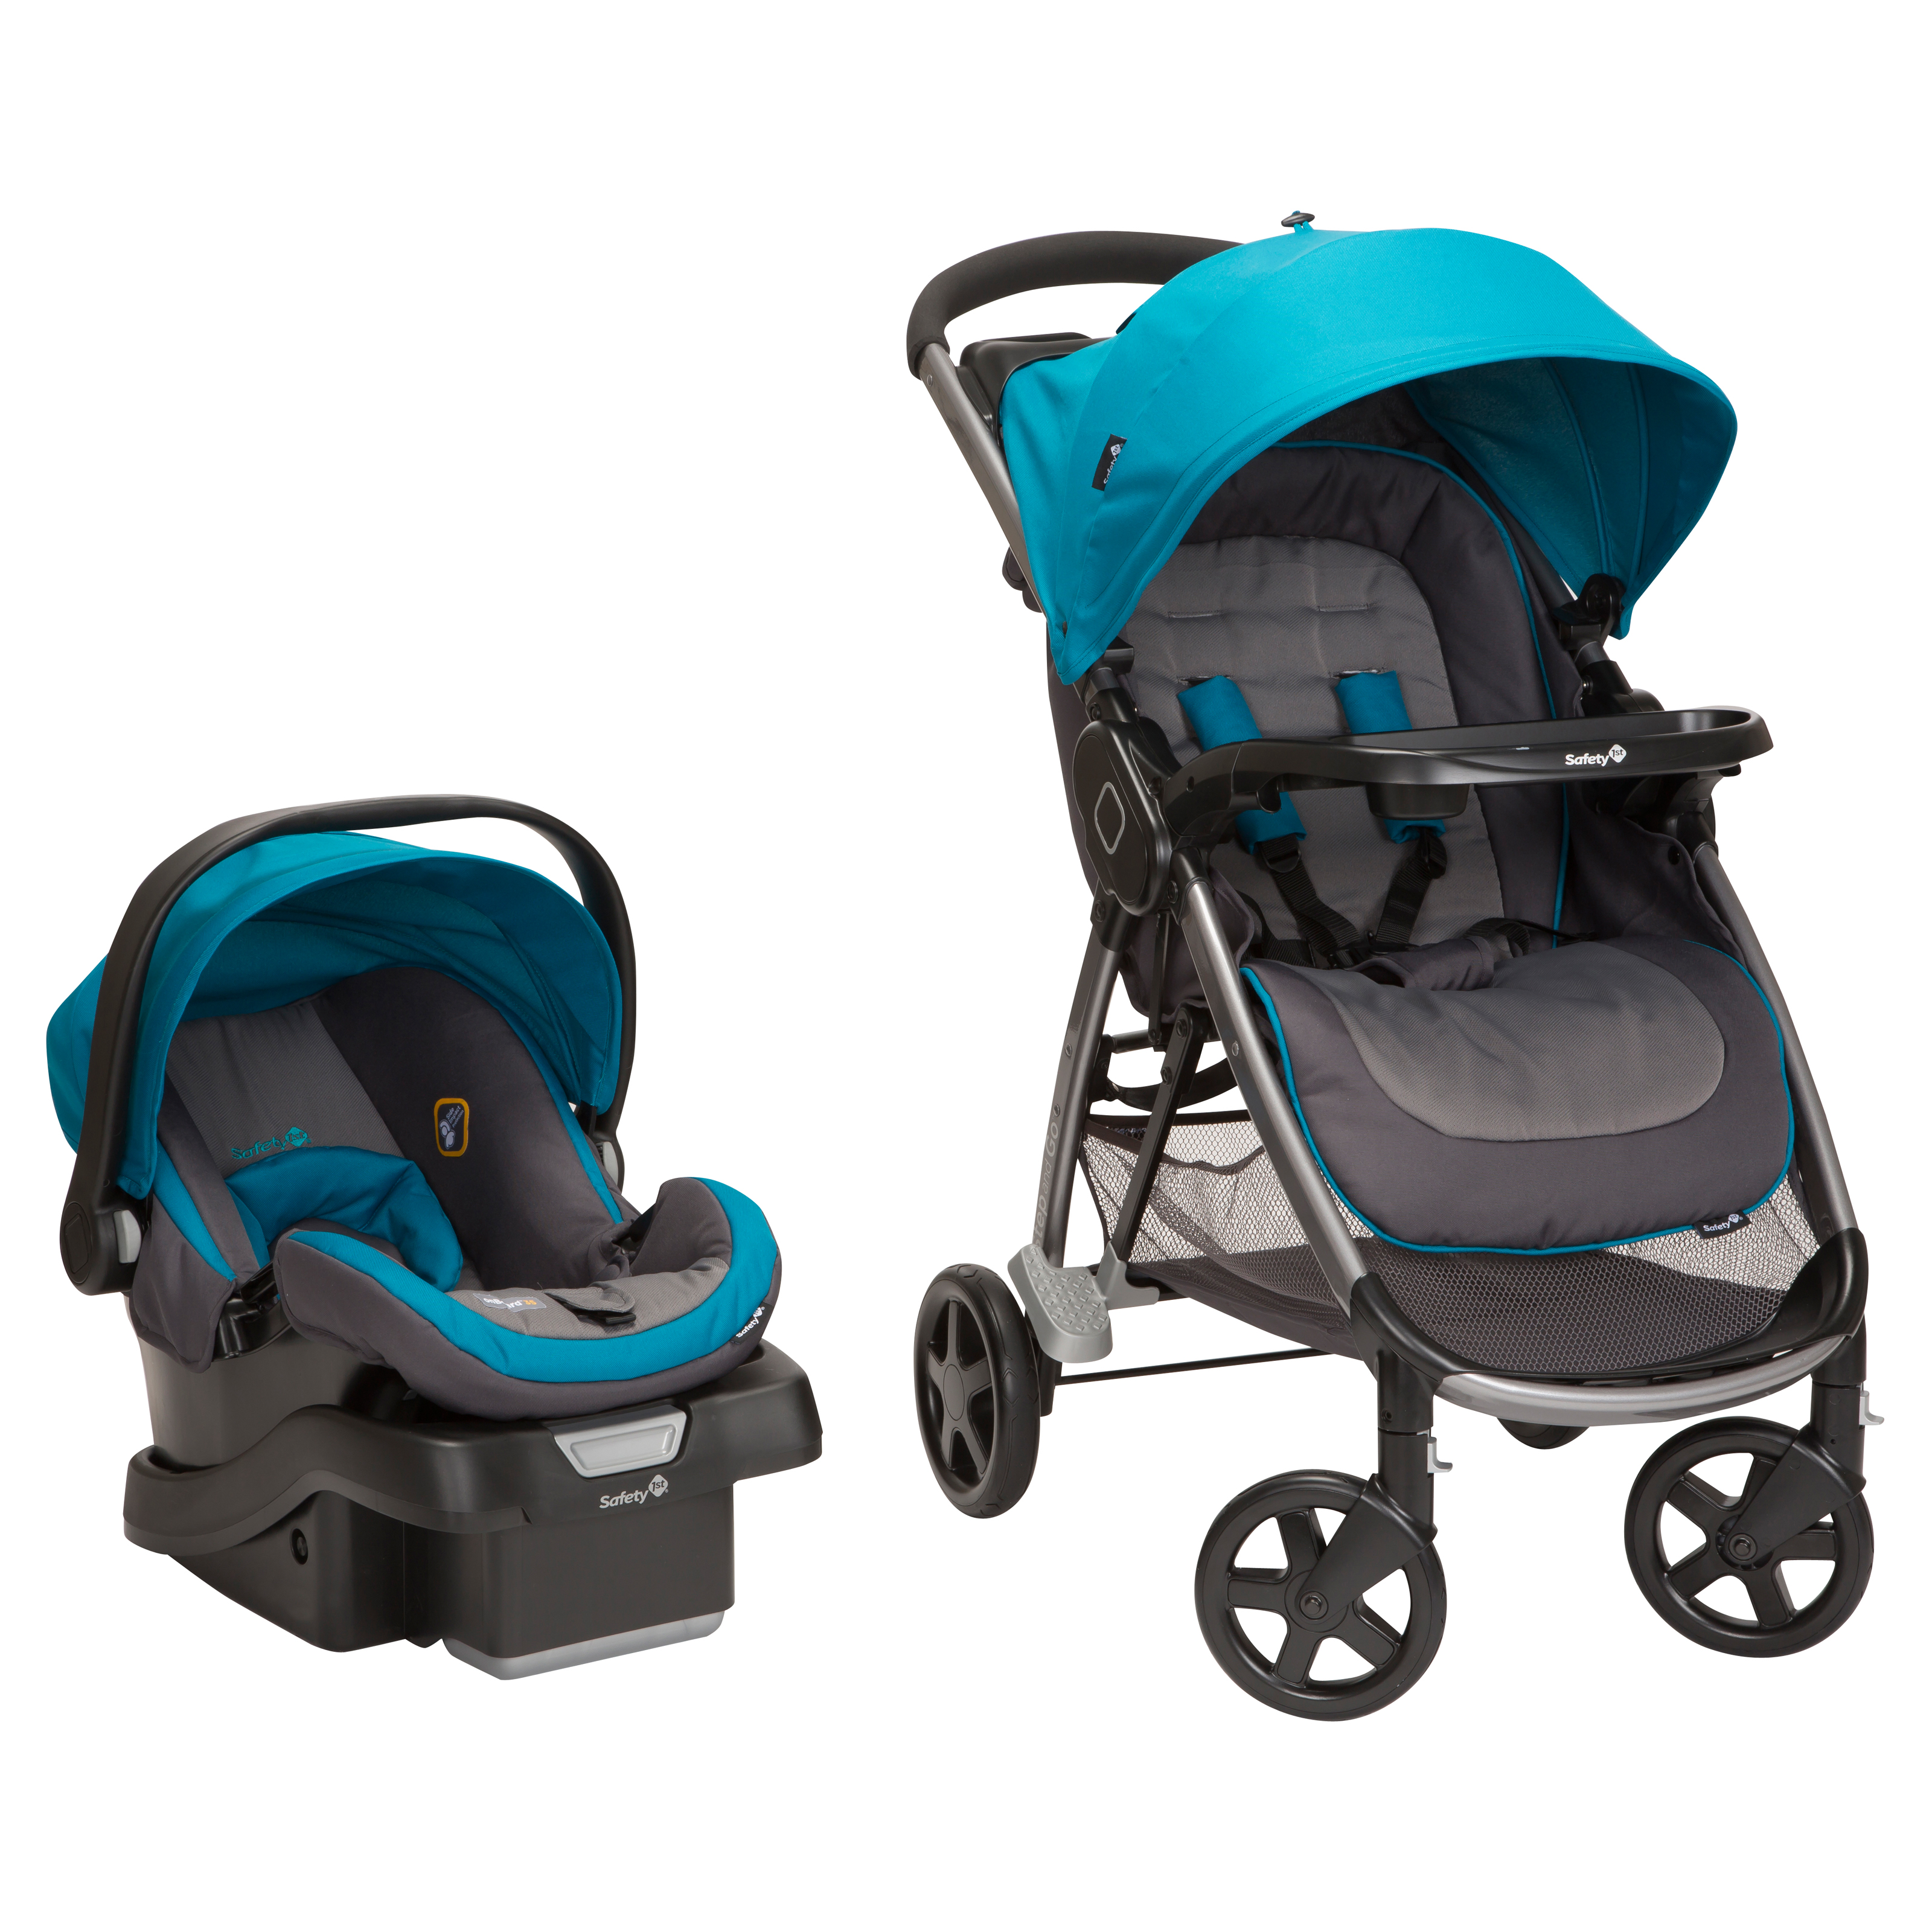 safety 1st step and go travel system isle of capri car seats at hayneedle. Black Bedroom Furniture Sets. Home Design Ideas